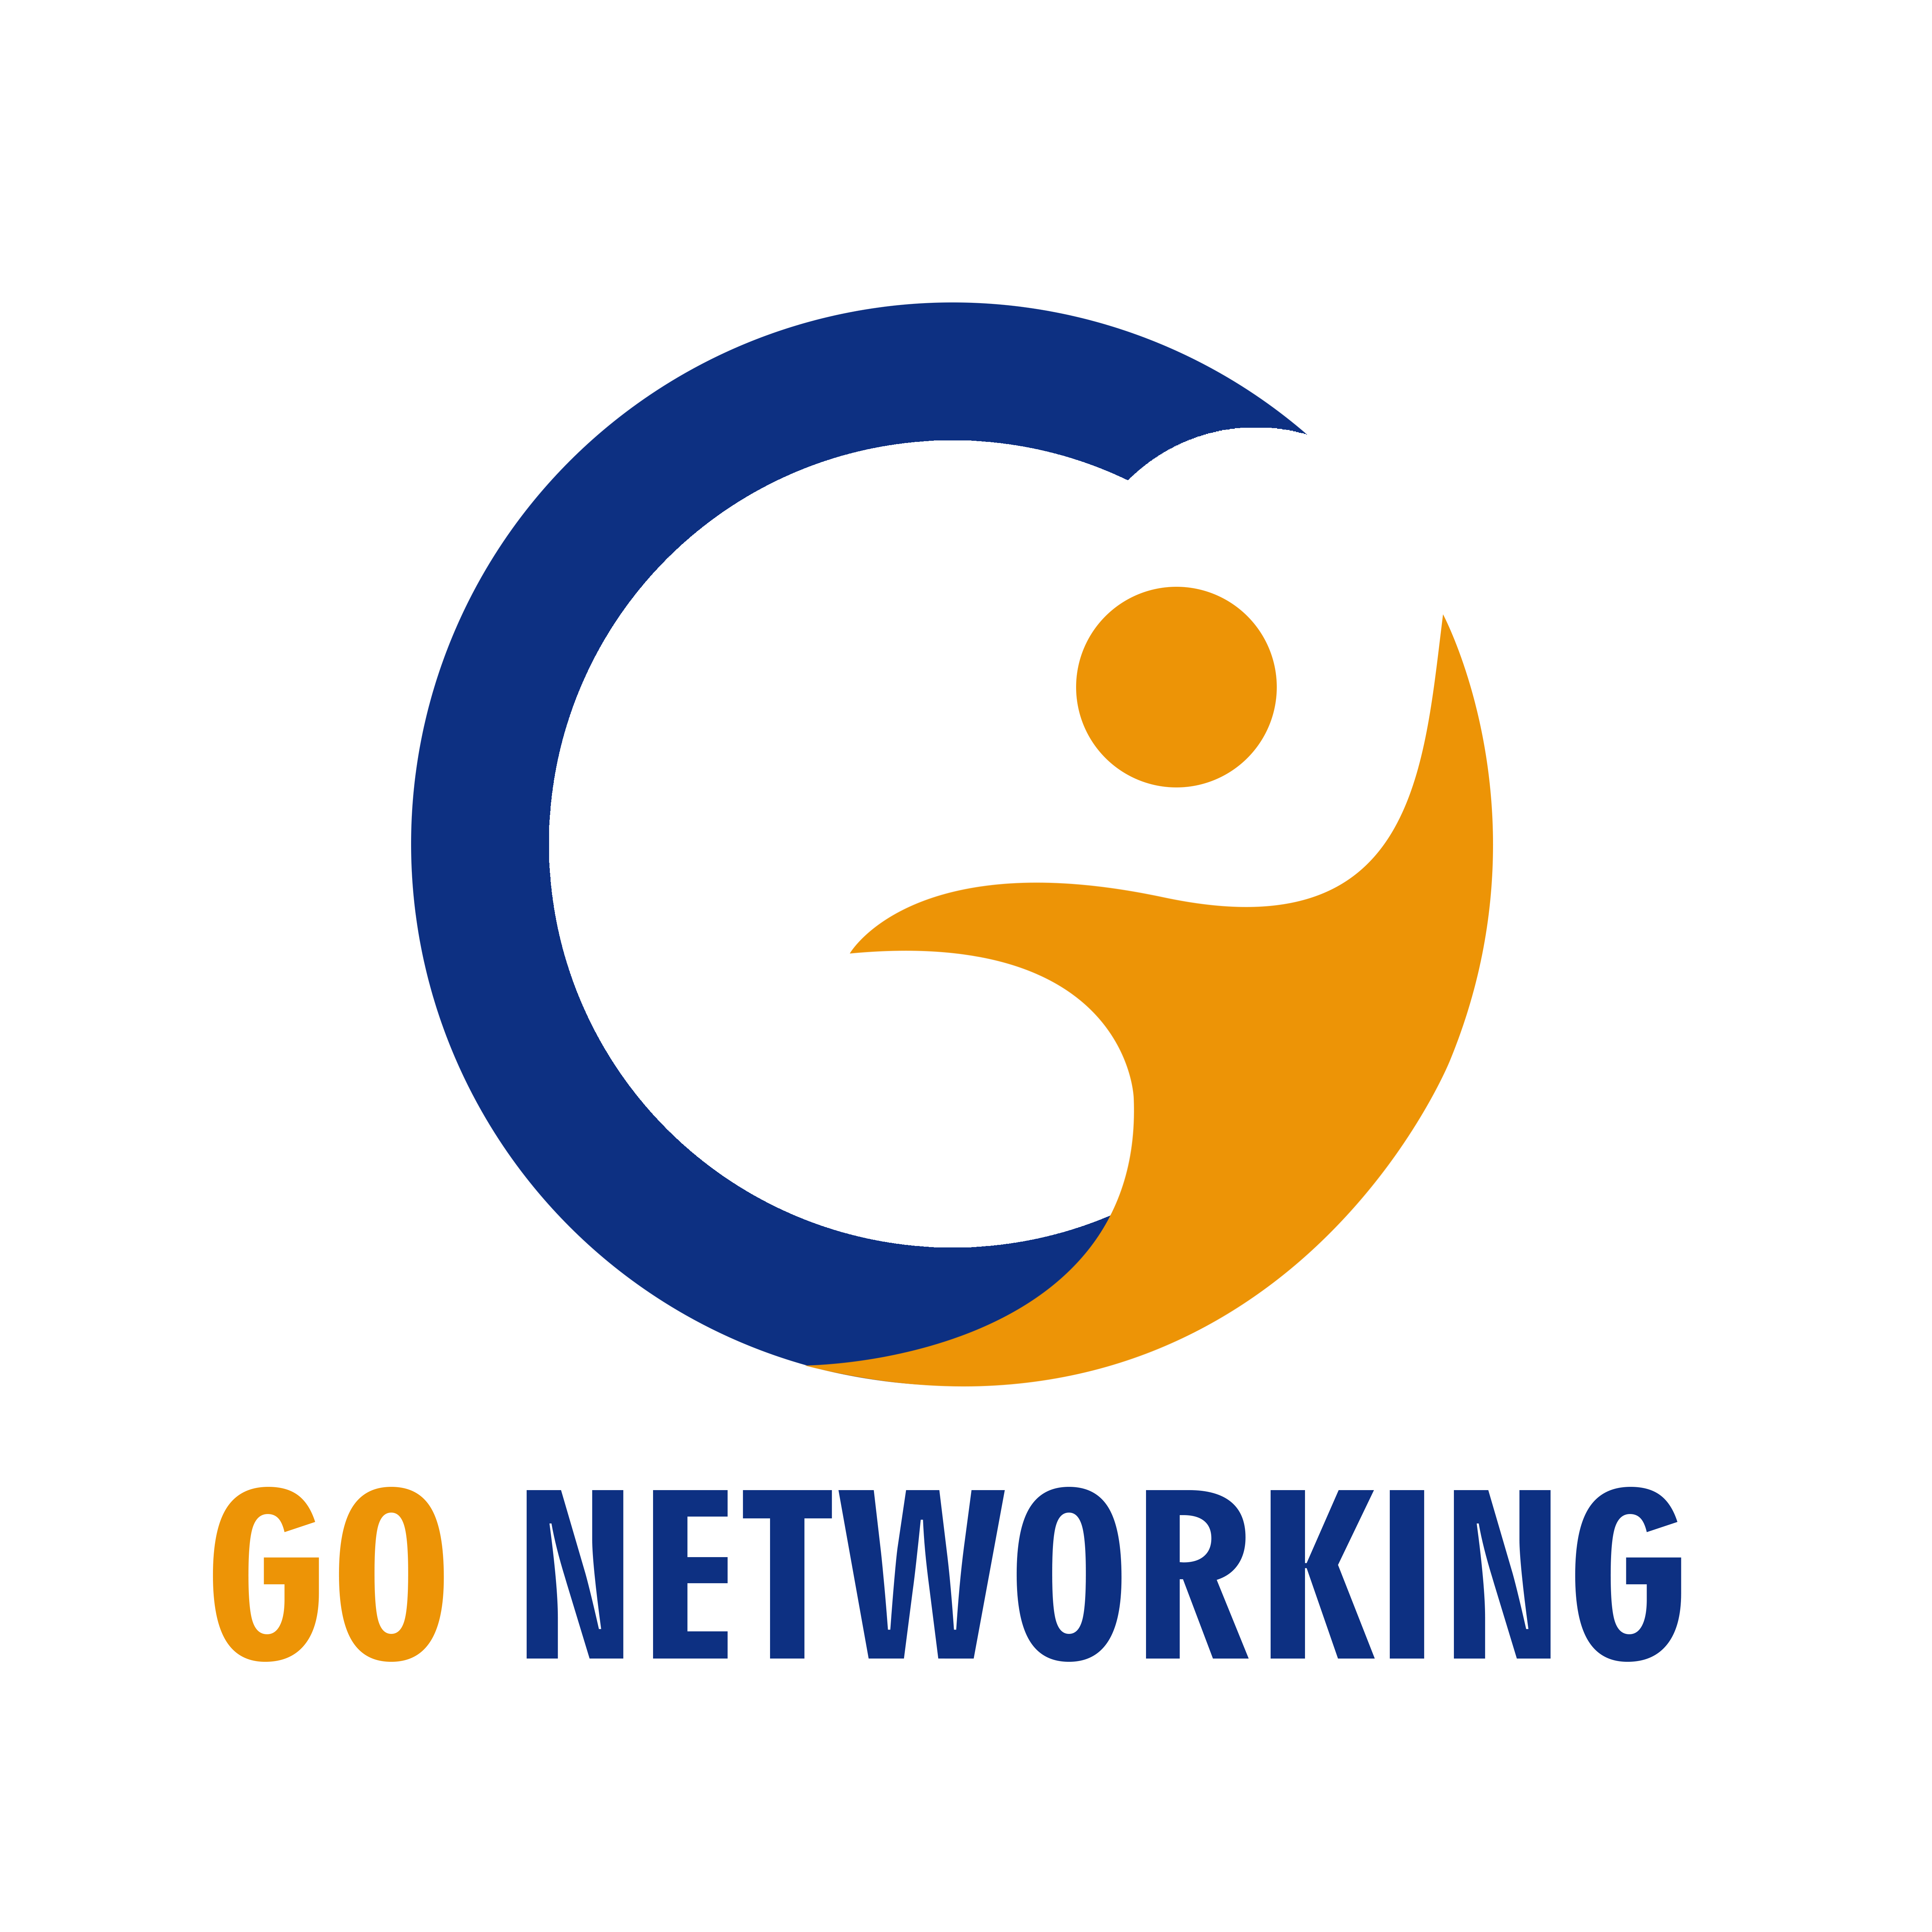 GO Networking